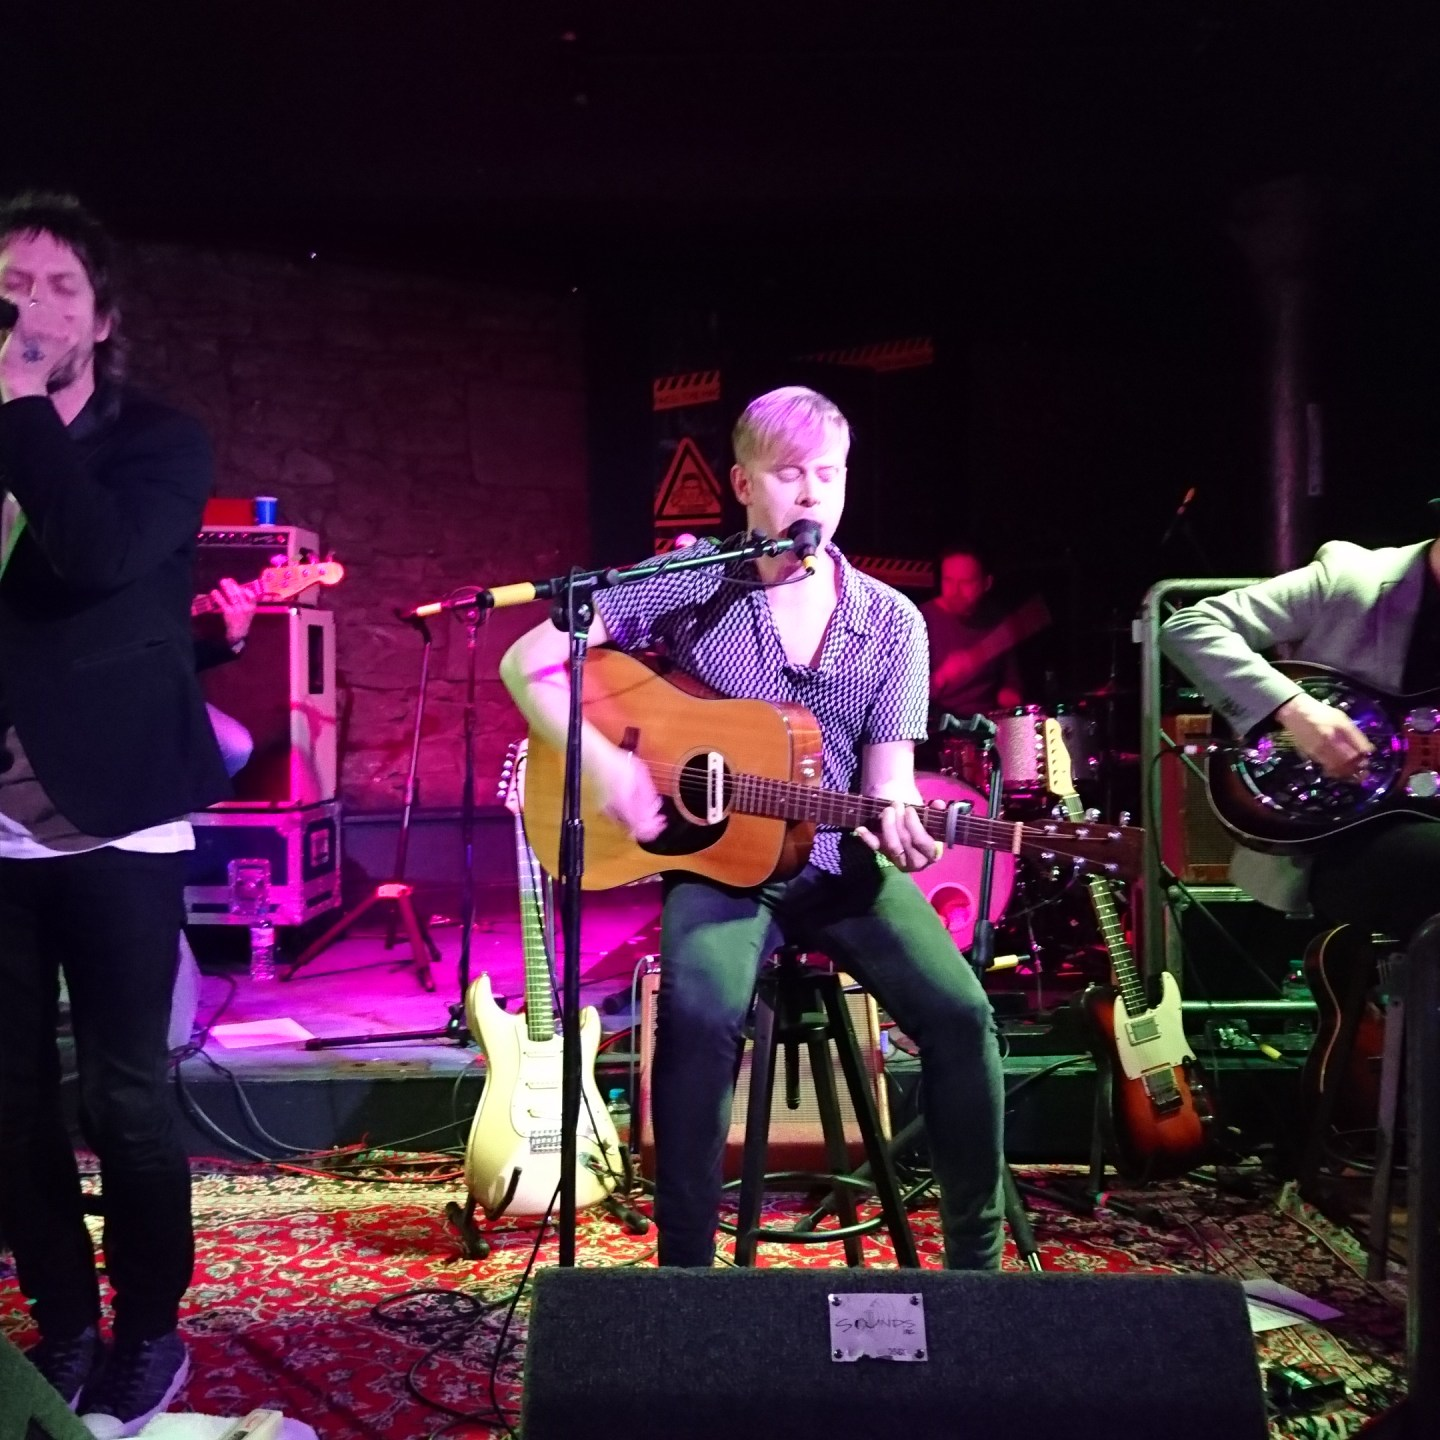 Gig Review: The Temperance Movement (Fat Sam's Dundee, 17/03/17)